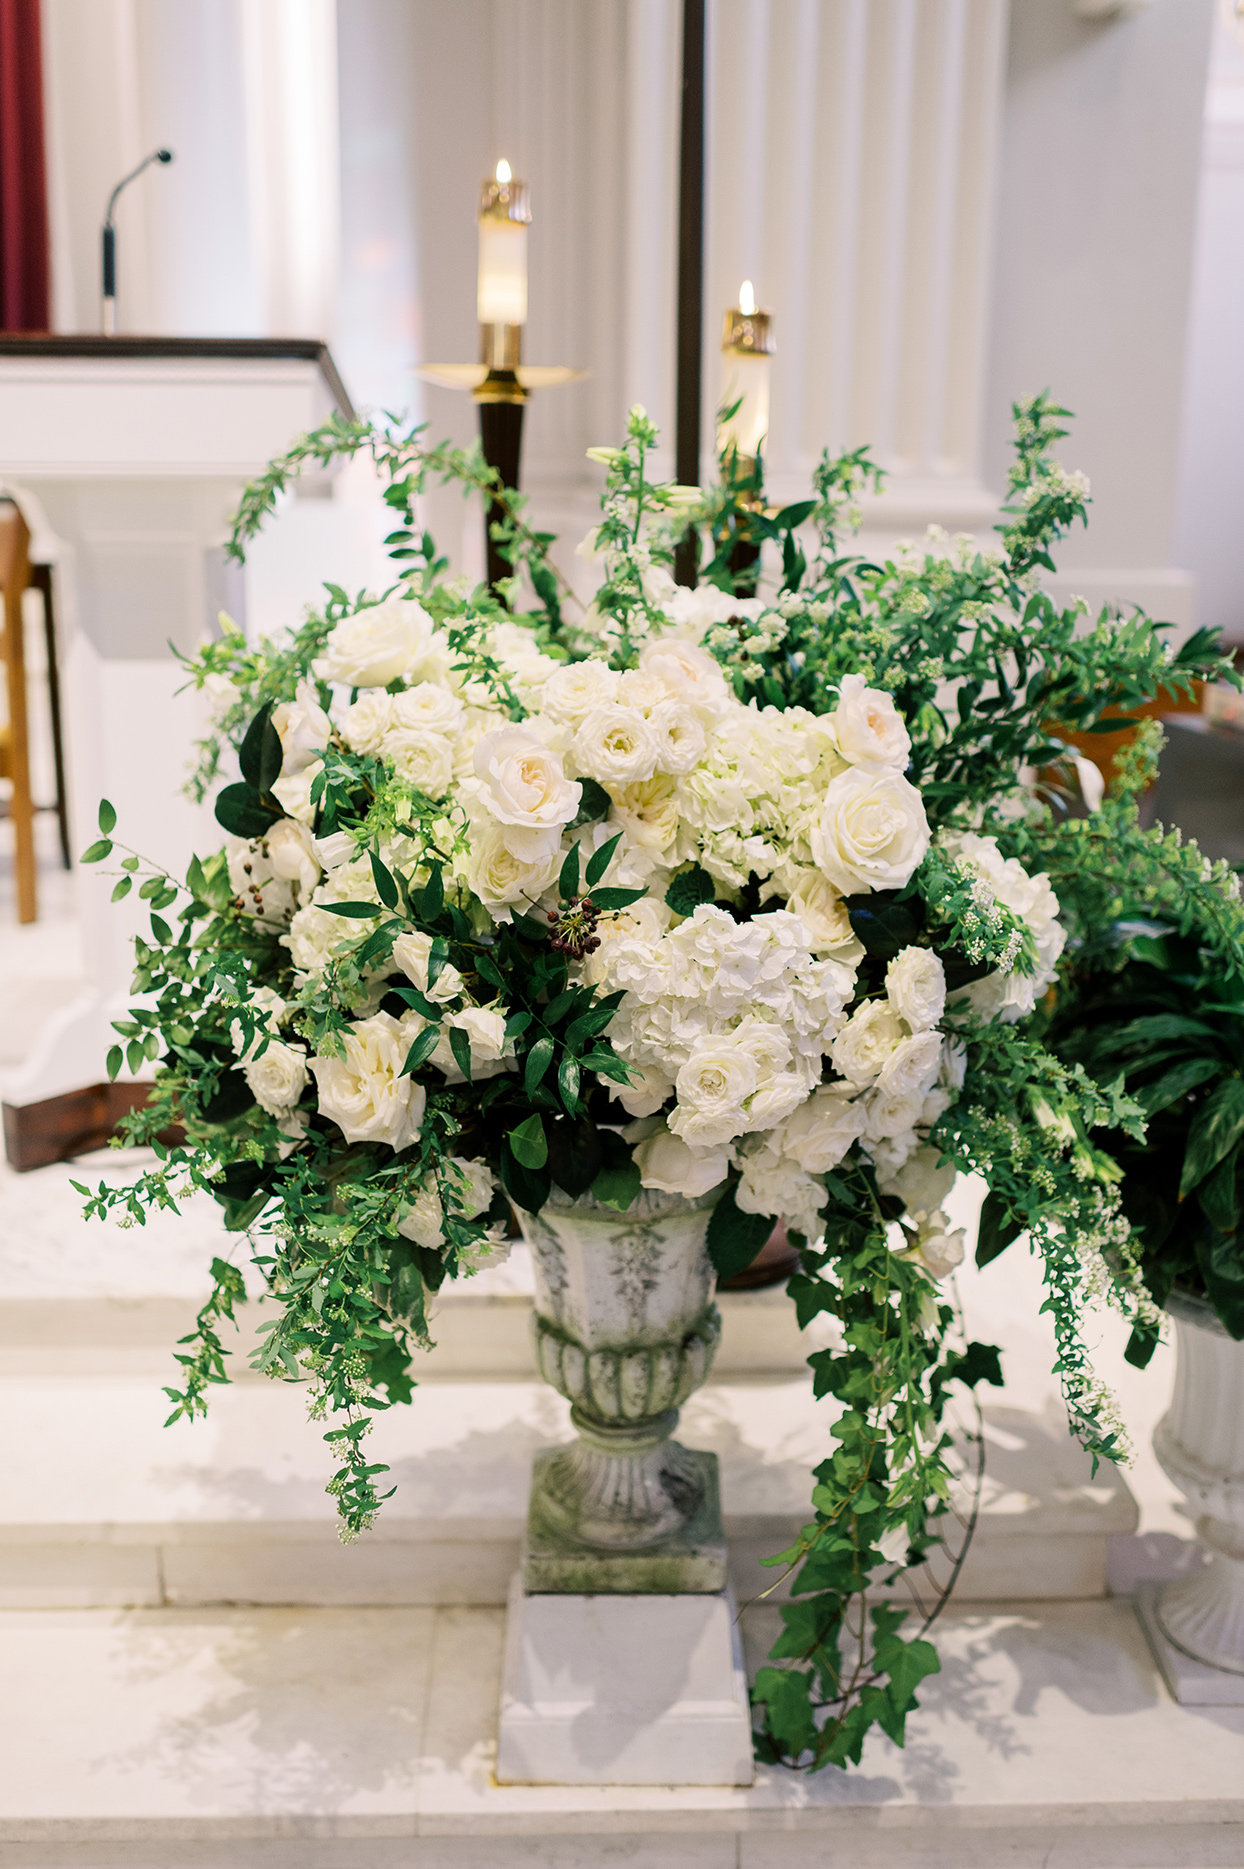 white roses and green vines in classic pots